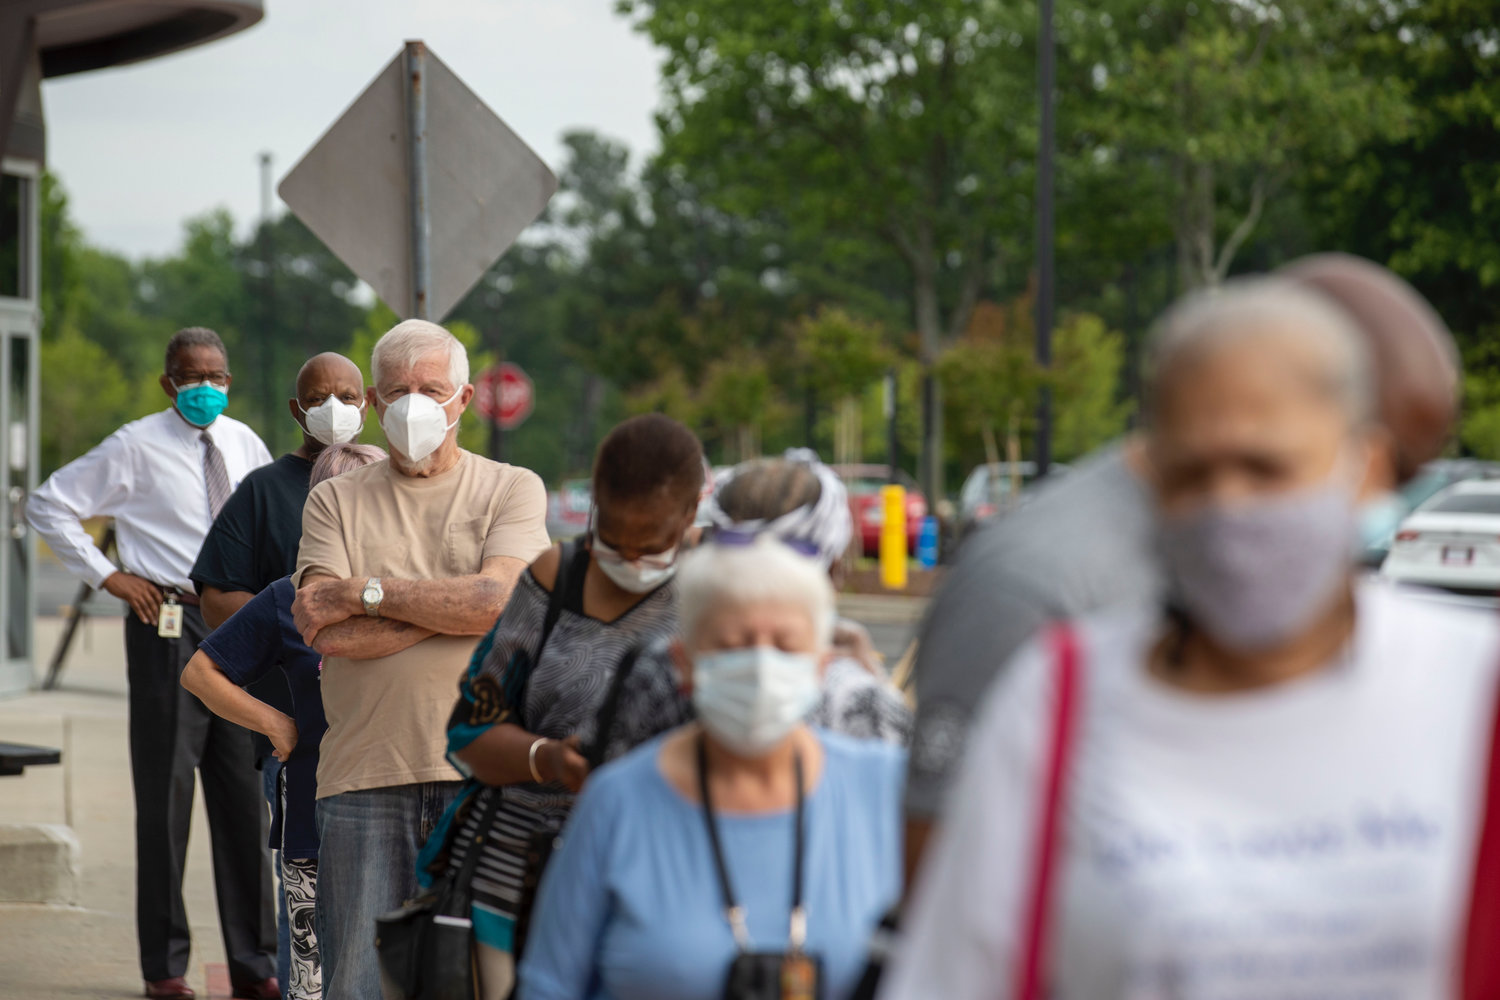 Voters wearing face masks stand in line outside of the Gwinnett County Voter Registration and Elections Office in order to participate in early voting in Lawrenceville on Monday.